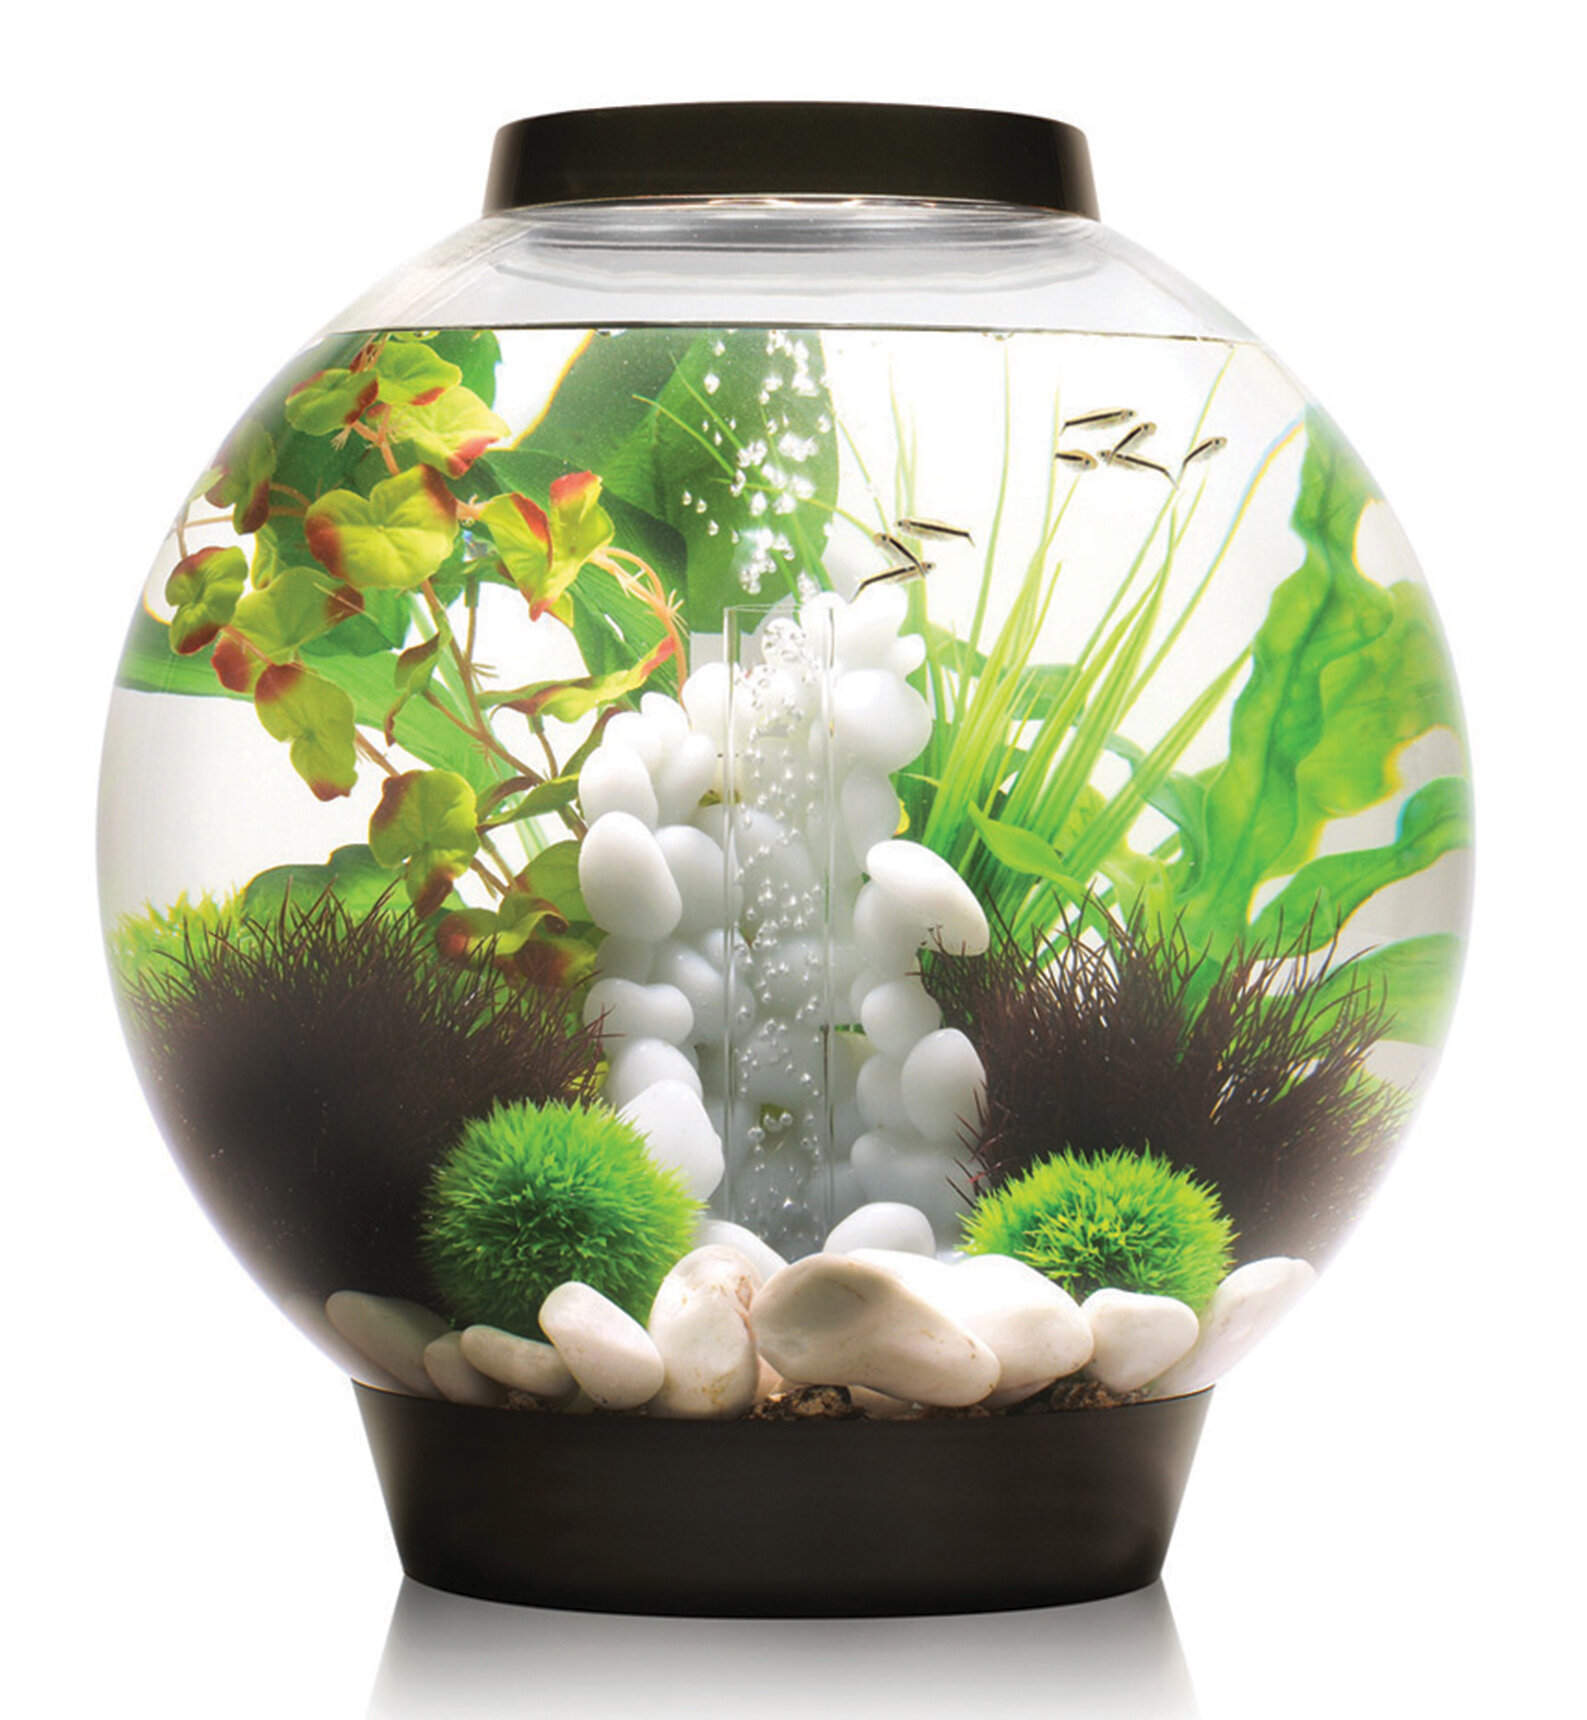 biorb classic aquarium bowl ebay. Black Bedroom Furniture Sets. Home Design Ideas